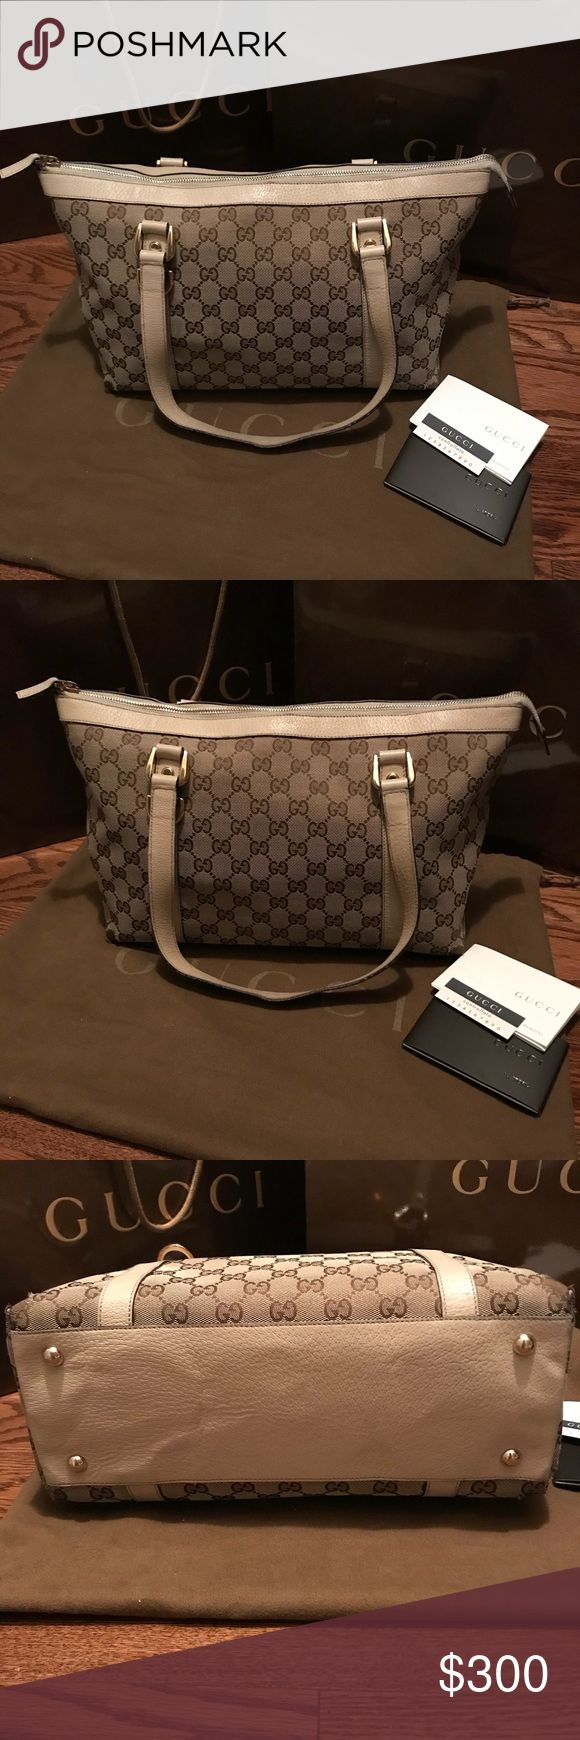 """Gucci Canvas Tote Authentic Gucci gg monogram canvas tote in ebony/tan color, cream leather trim with gold-tone hardware, double shoulder strap; perfect size everyday bag (approximately 15""""x9""""x5""""); protective feet at base, zip closure at top, interior has one zip pocket and one cellphone pocket; In great condition except minor scuff at the four bottom corners (see the last pic); comes with dust bag, original Gucci box and shopping bag Gucci Bags Totes"""